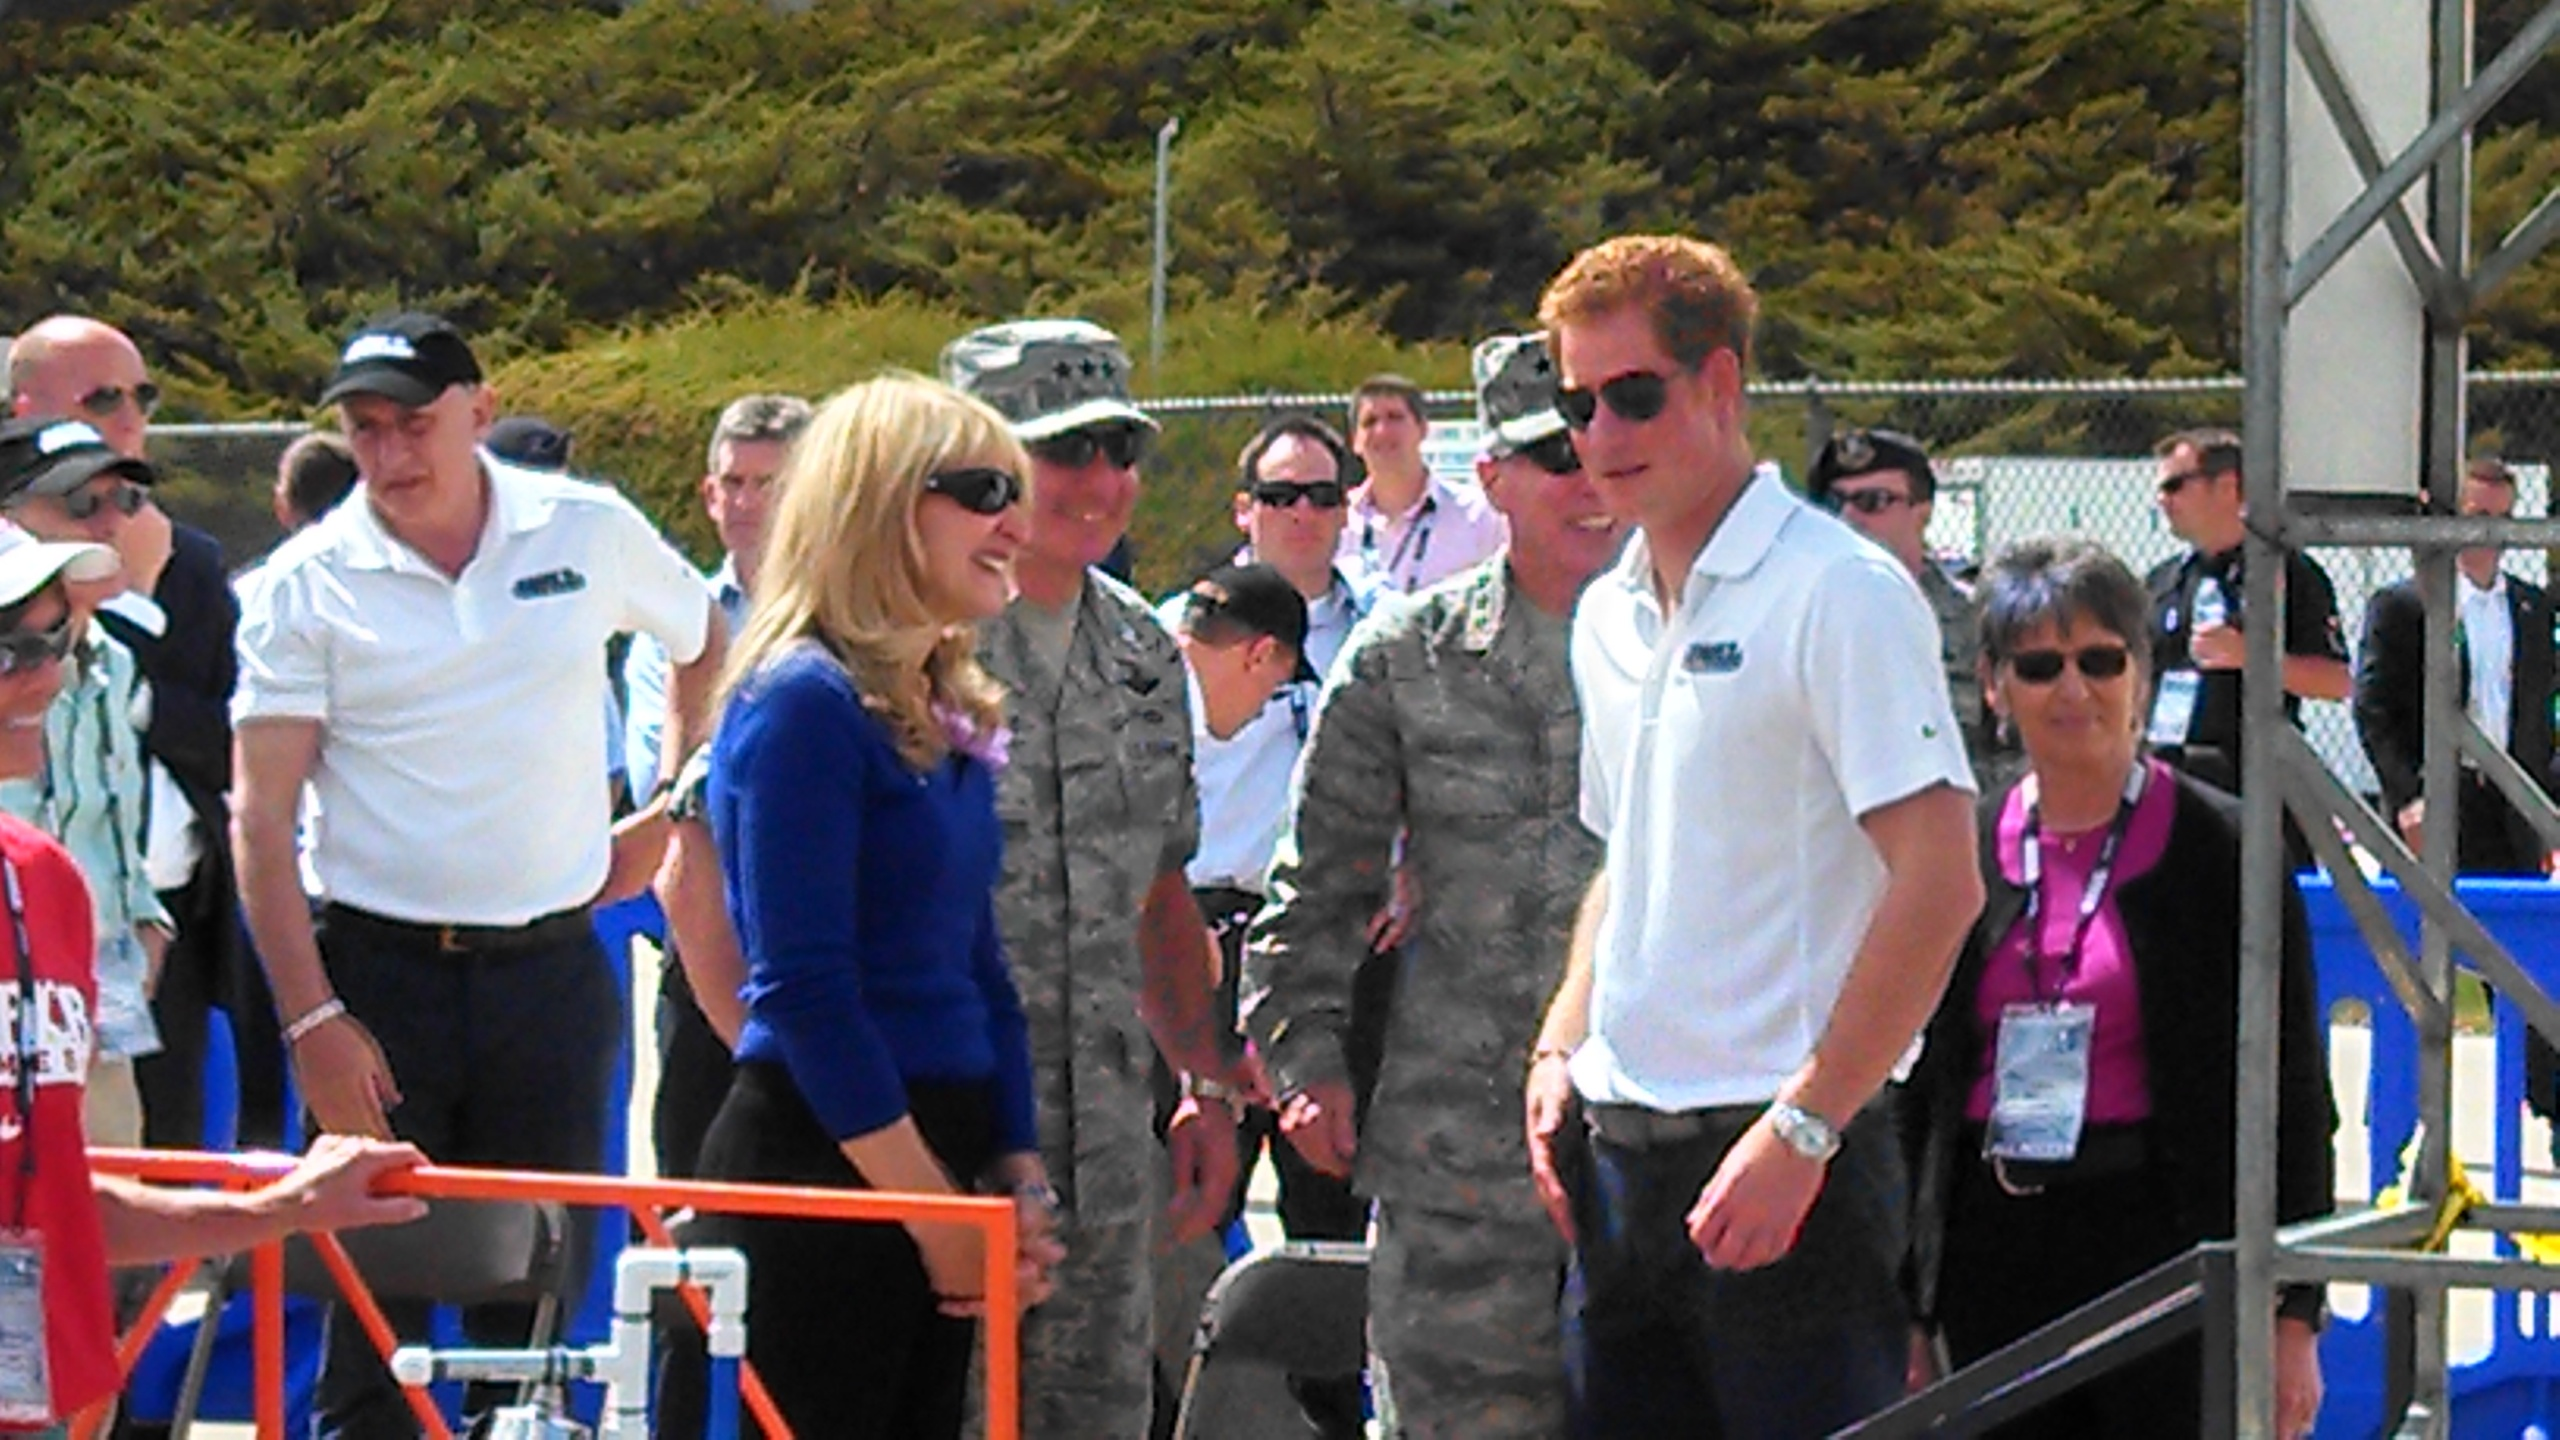 Prince Harry spoke with athletes, media and others Sunday during the Warrior Games in Colorado Springs. (Credit: Greg Nieto)